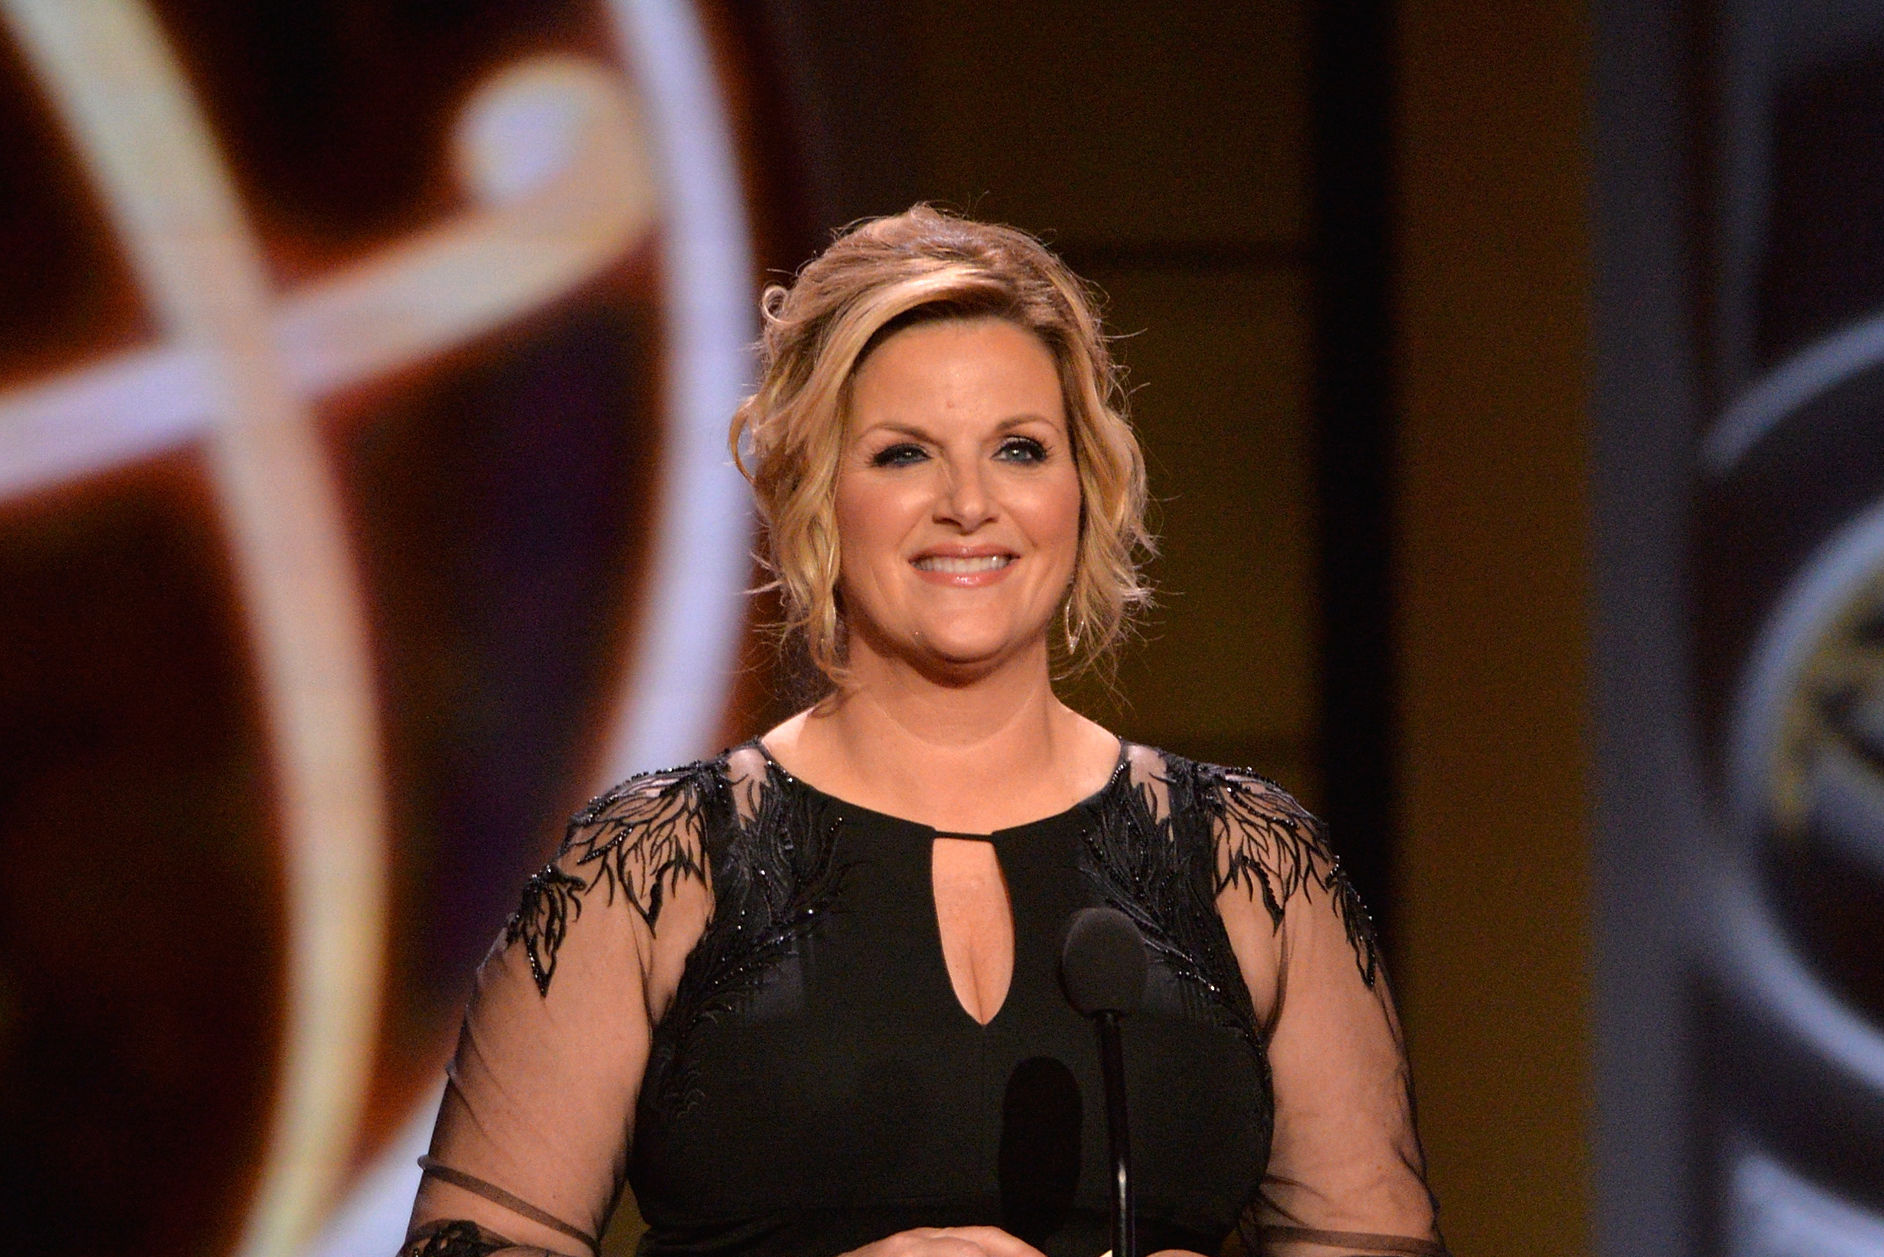 """Trisha Yearwood Shares Her Thoughts on Manchester Attack: """"Music is a Healer"""""""